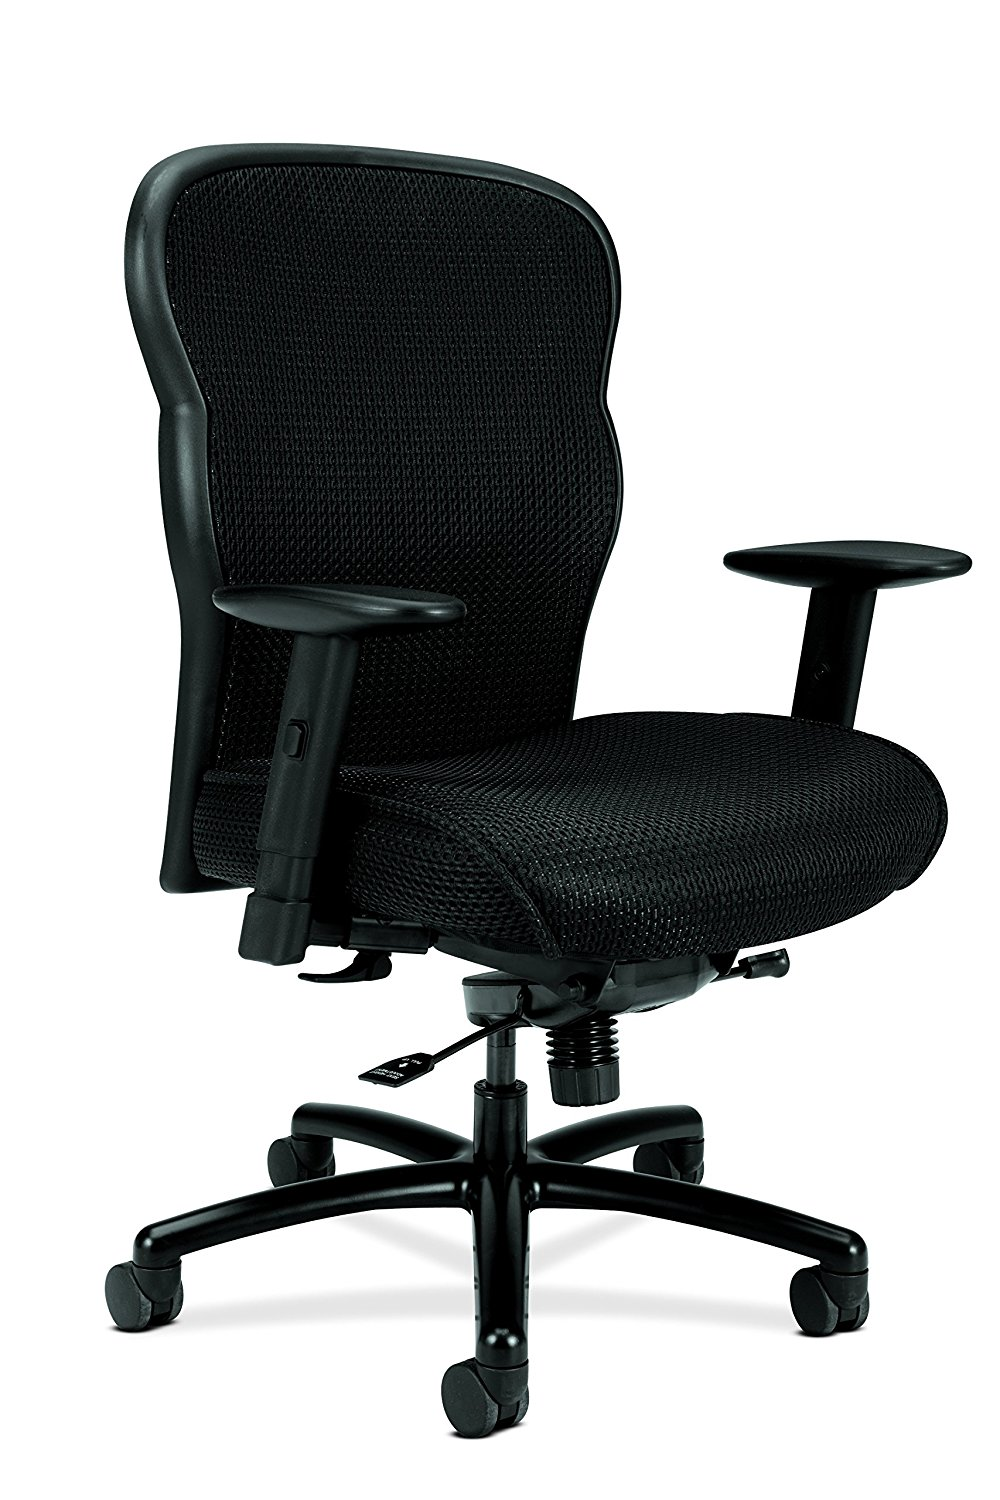 Enhance Any Office Environment With This Super Sized Upscale Executively Designed Chair Lean Your Shoulders Onto Wide Back That Will